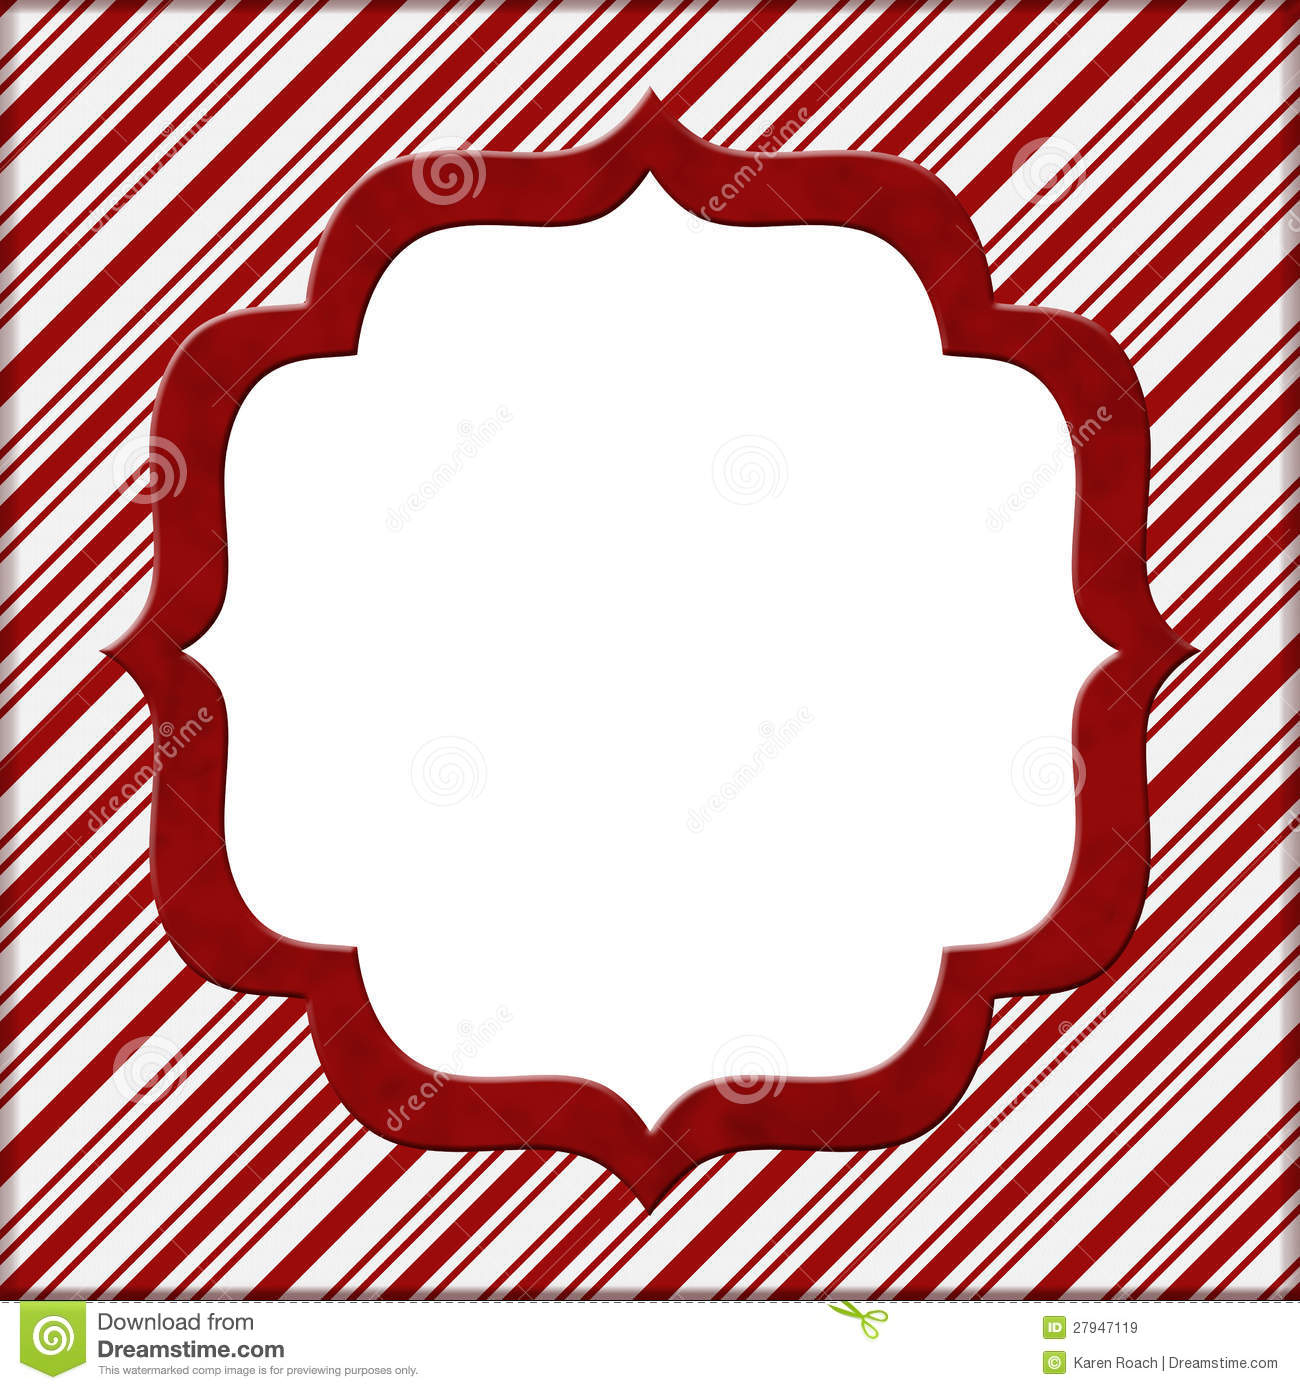 Christmas Candy Cane Striped Background Royalty Free Stock Images ...